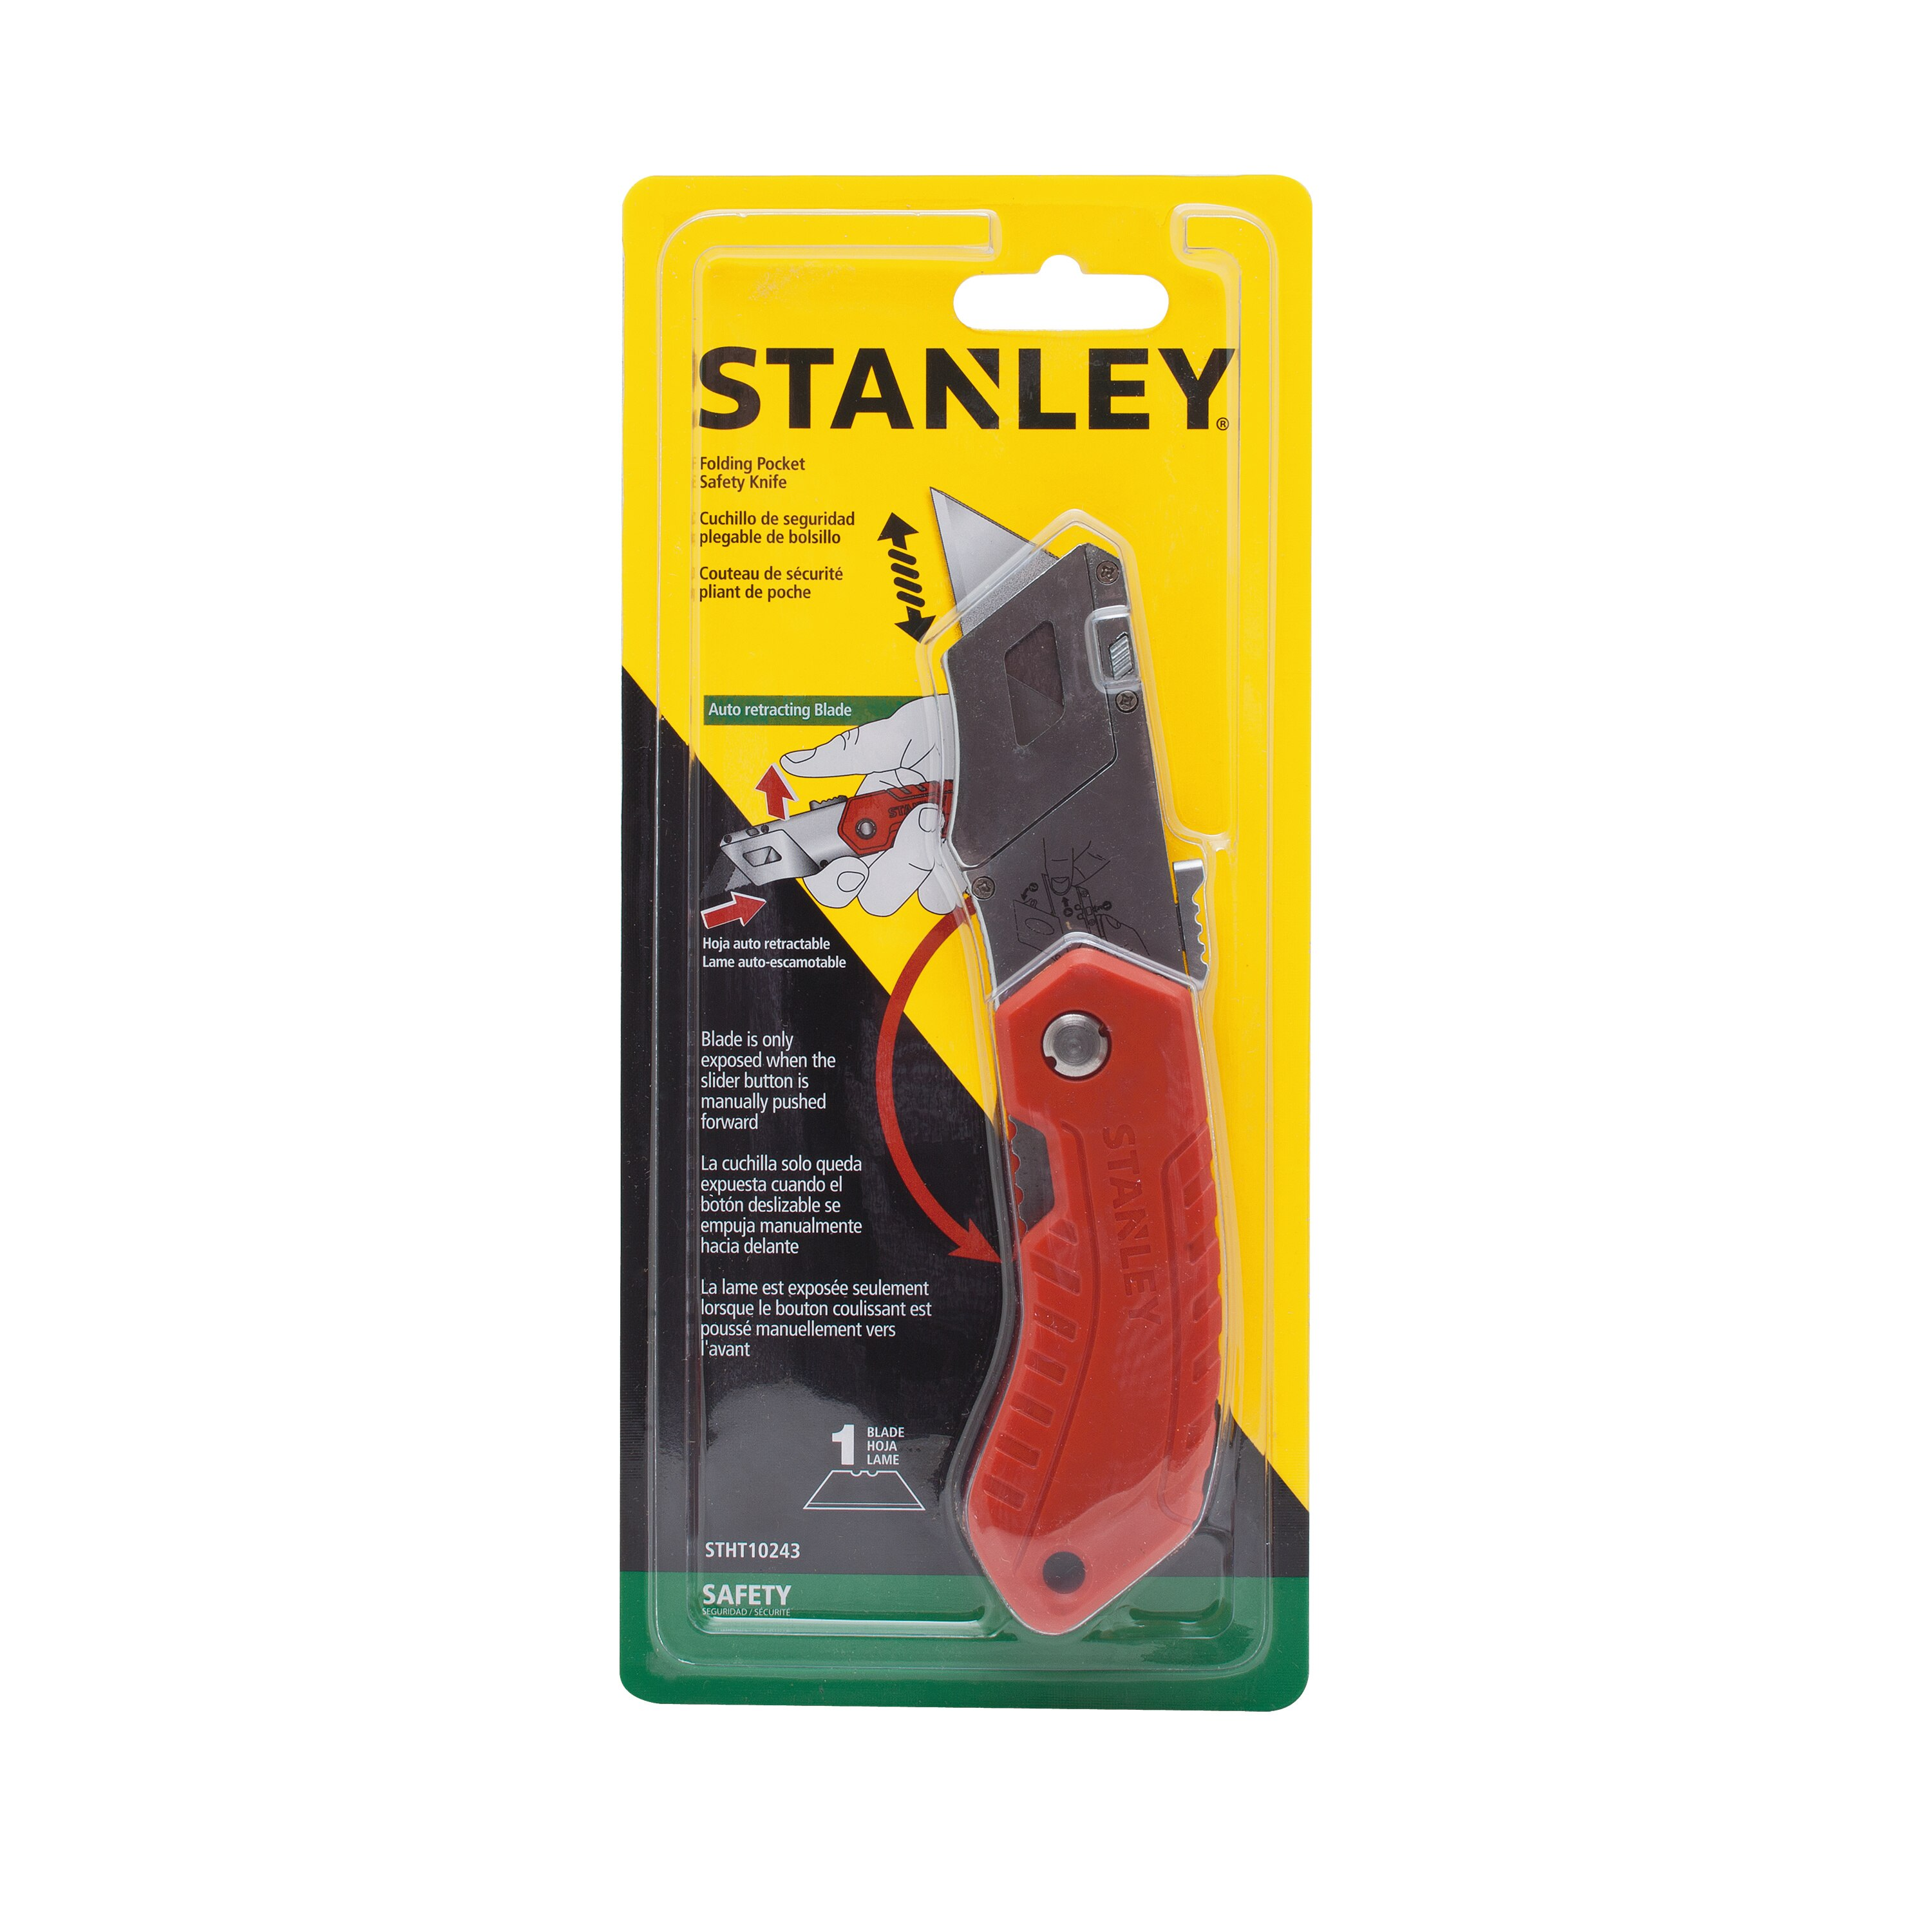 Stanley Tools - Folding Pocket Safety Knife - STHT10243